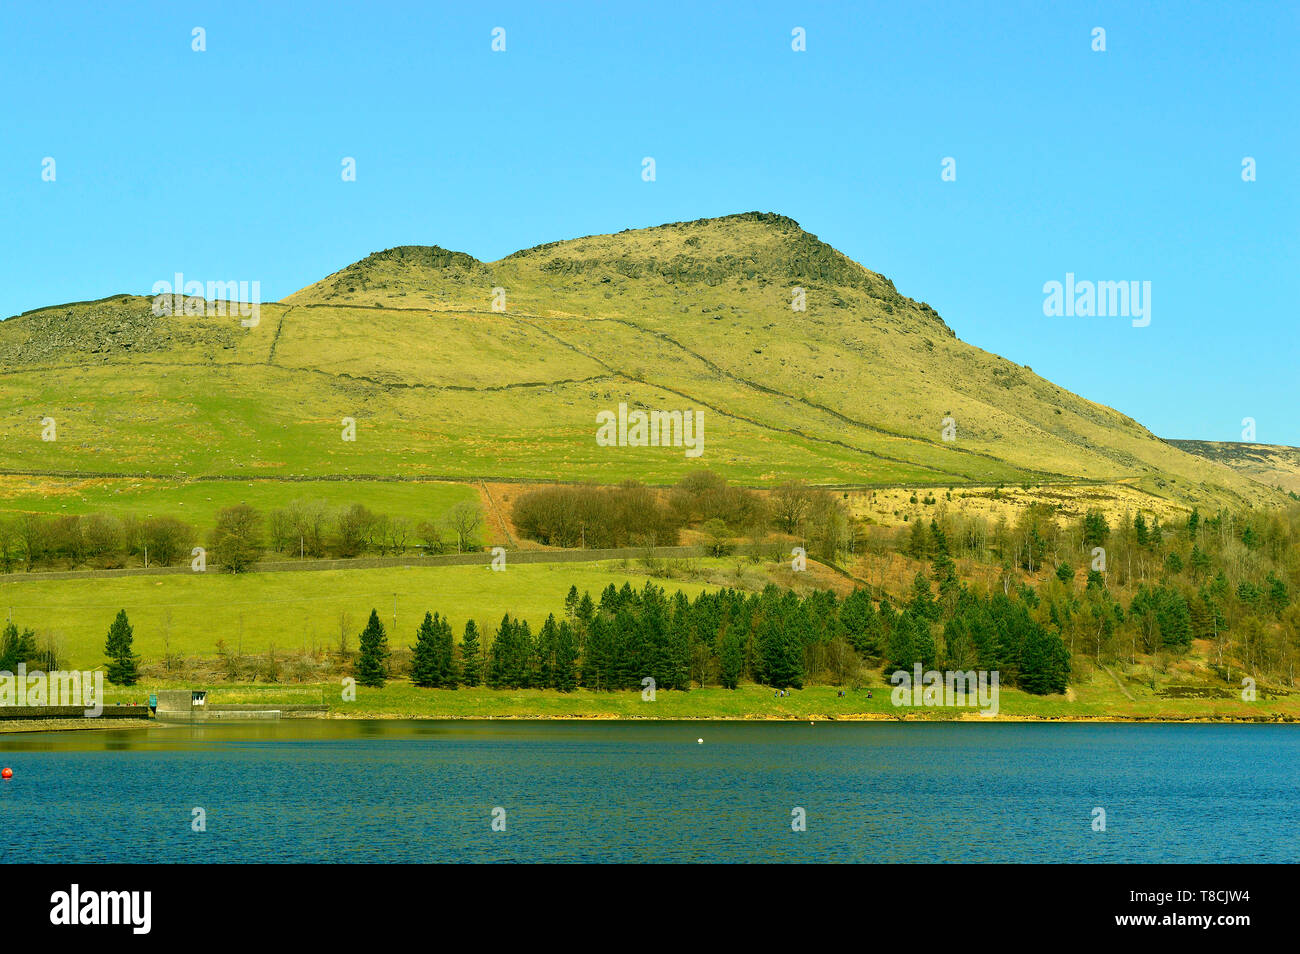 Dovestone Reservoir lies where the valleys of the Greenfield and Chew Brooks converge together above the village of Greenfield, on Saddleworth Moor - Stock Image